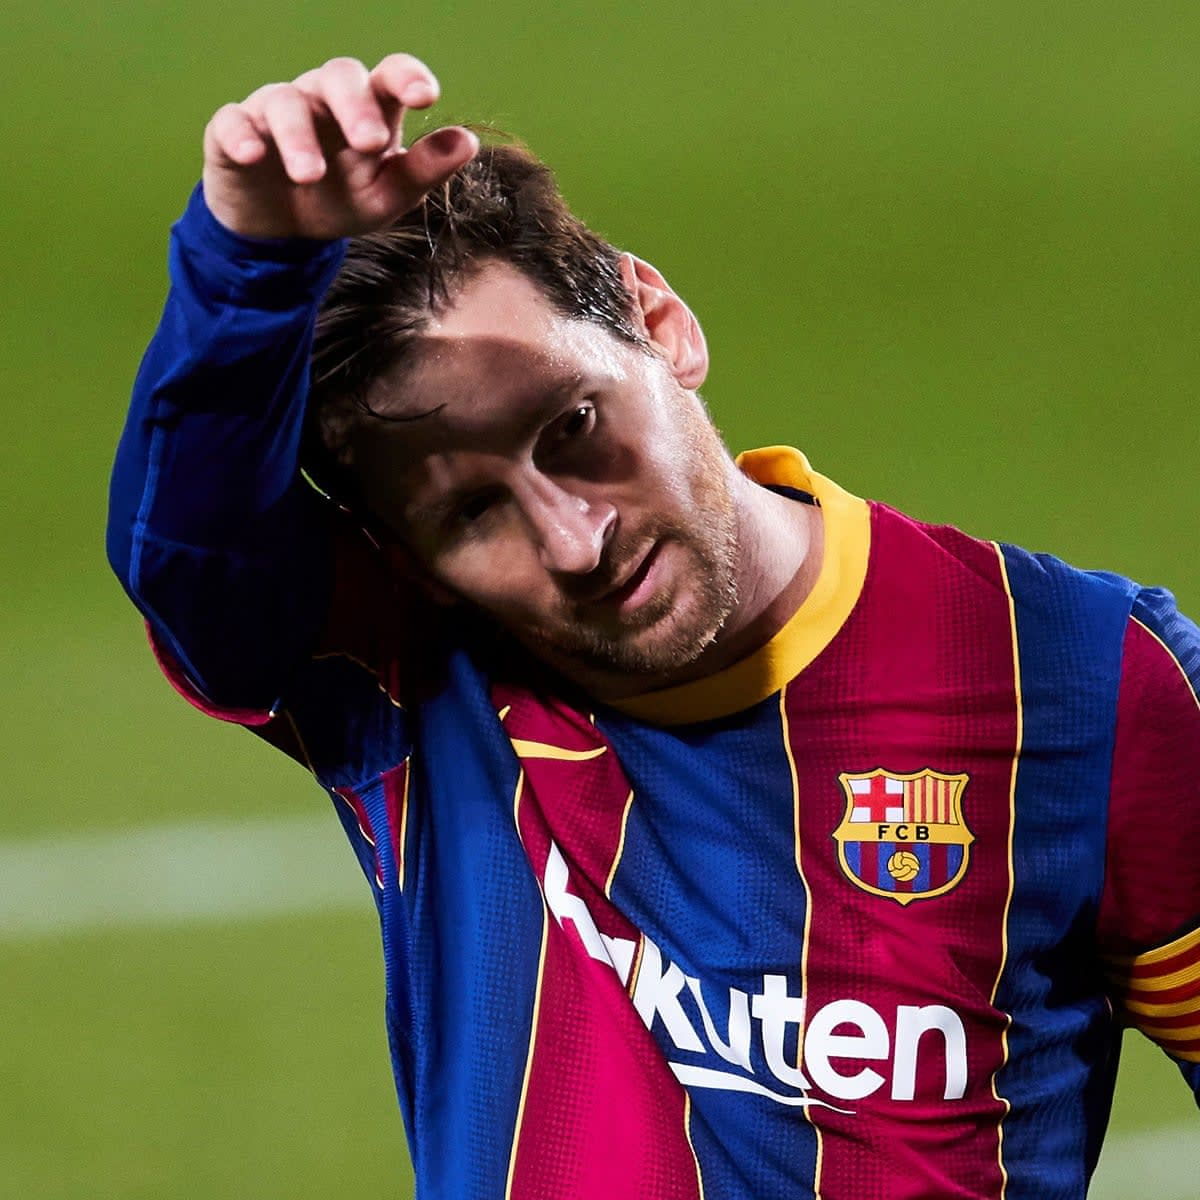 Messi wants a competitive Barcelona squad, not more money – Laporta